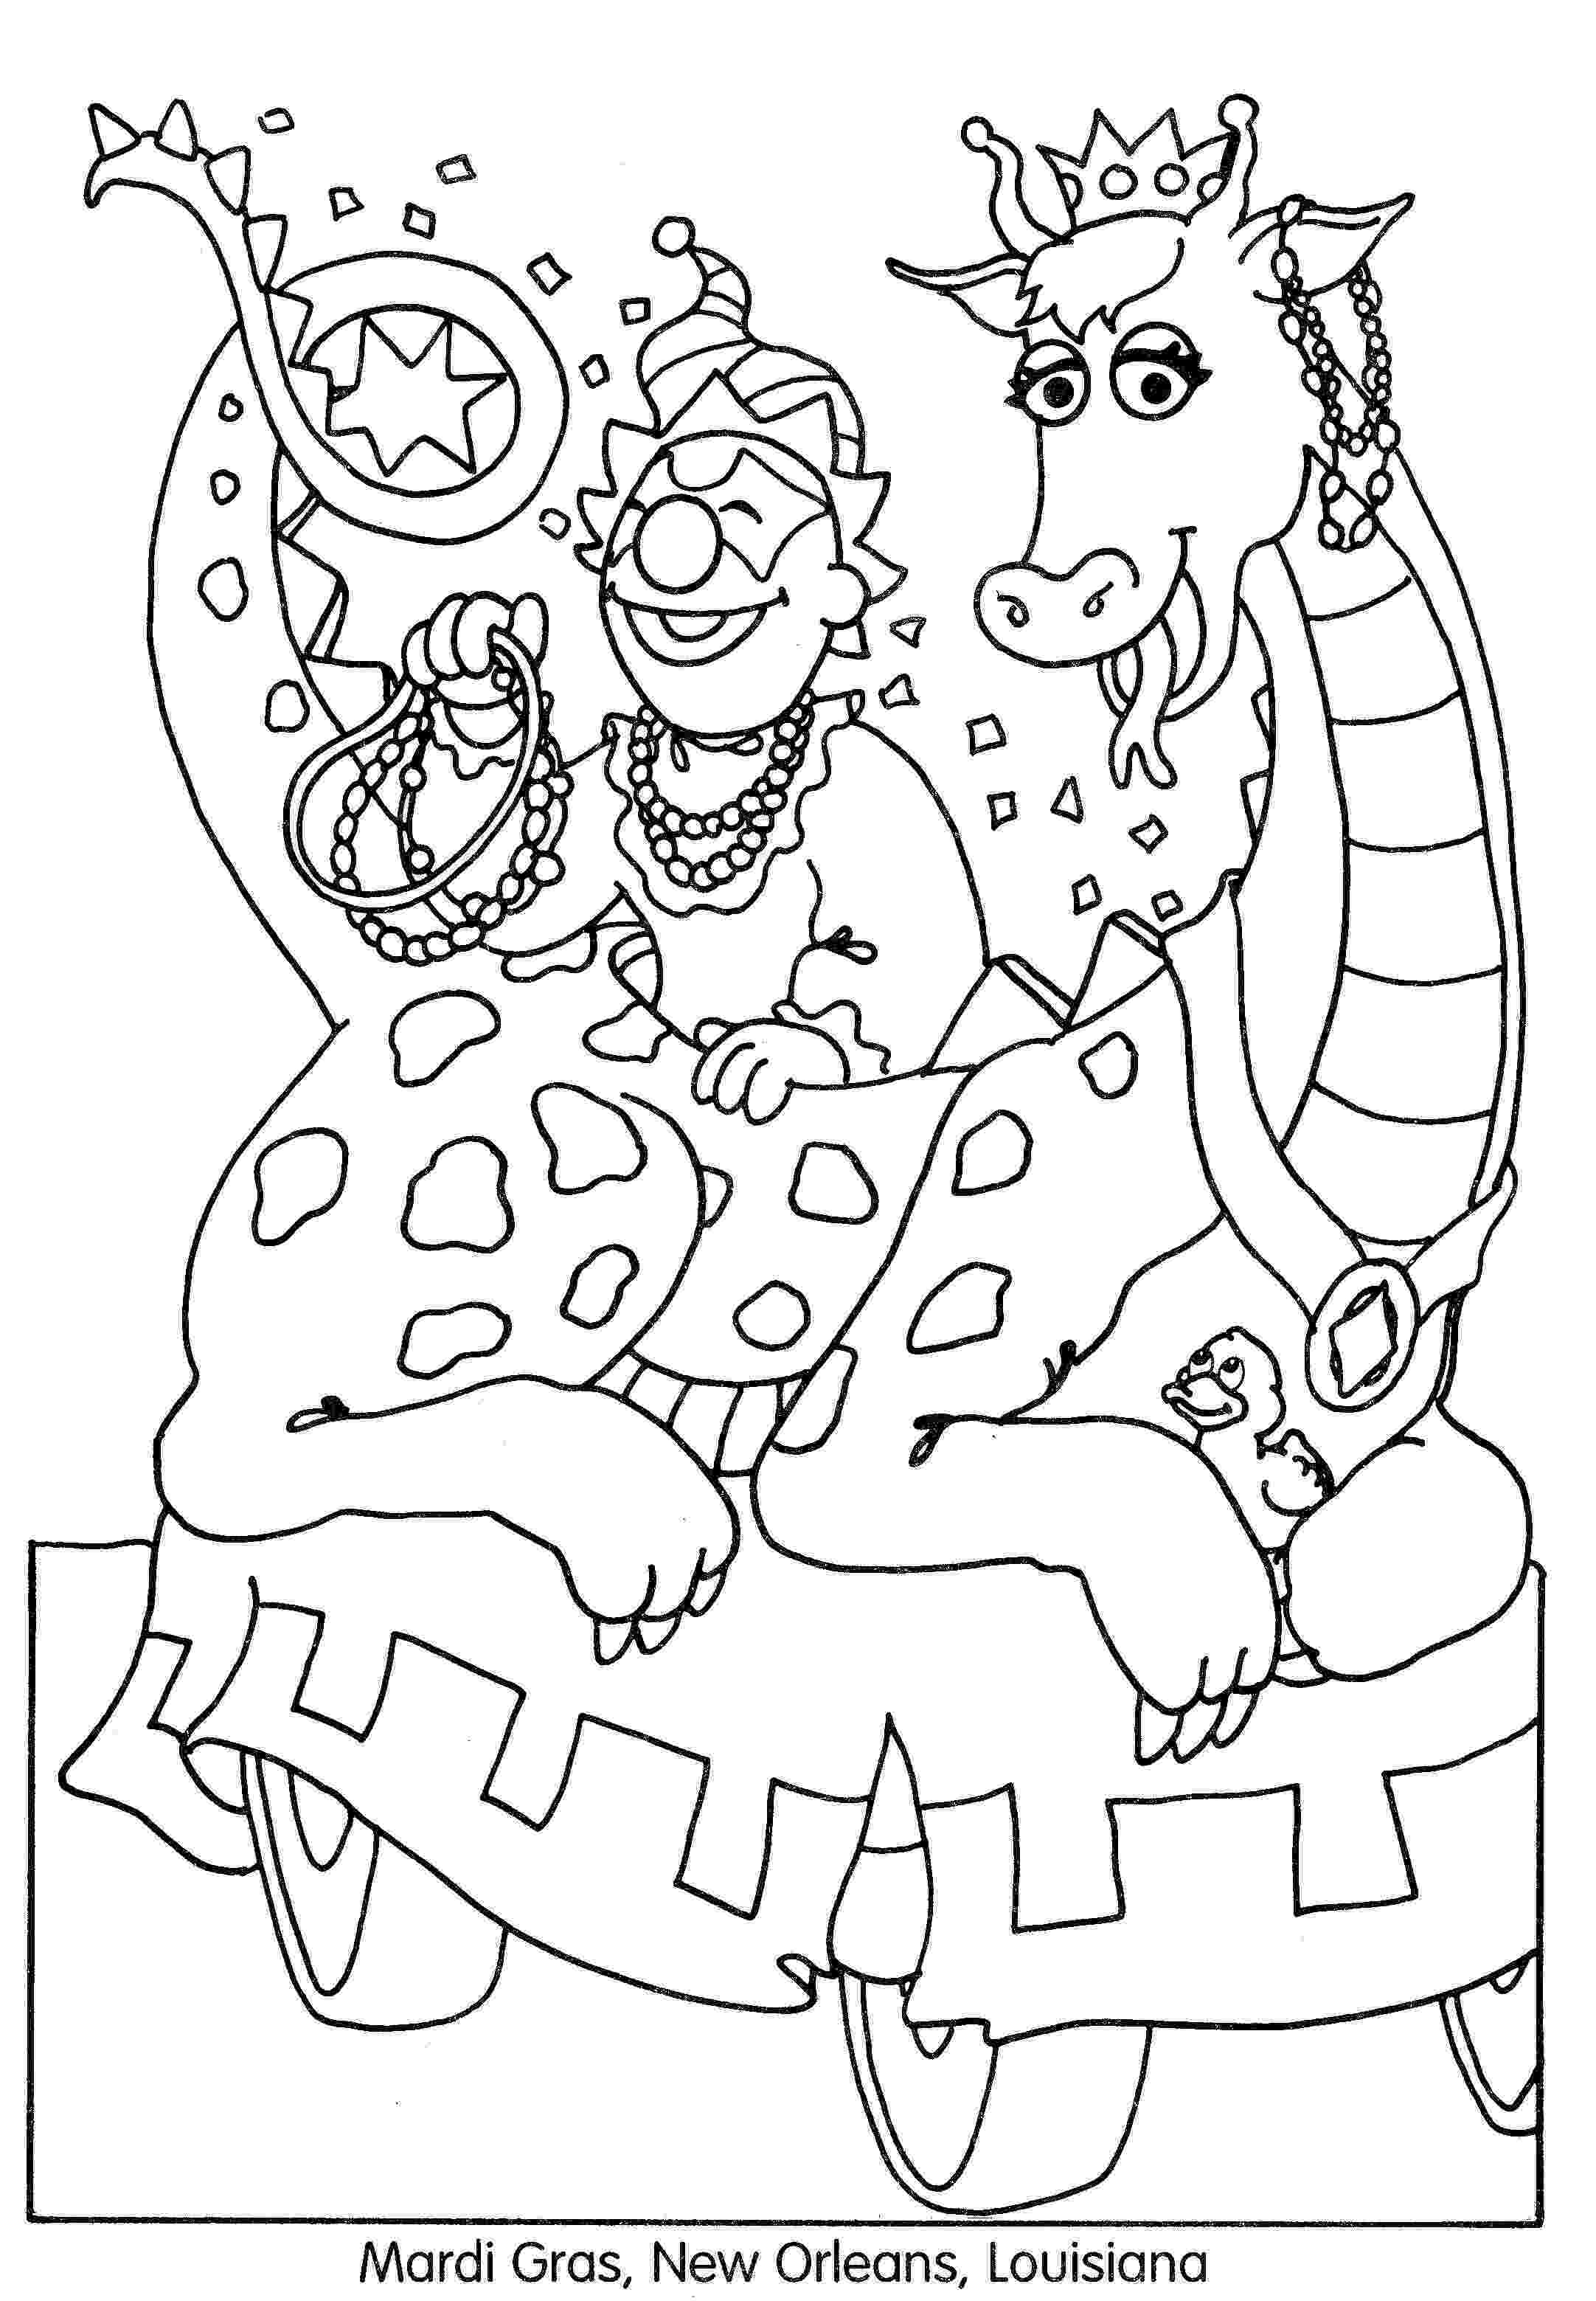 mardi gras color sheets printable mardi gras coloring pages for kids cool2bkids mardi gras sheets color